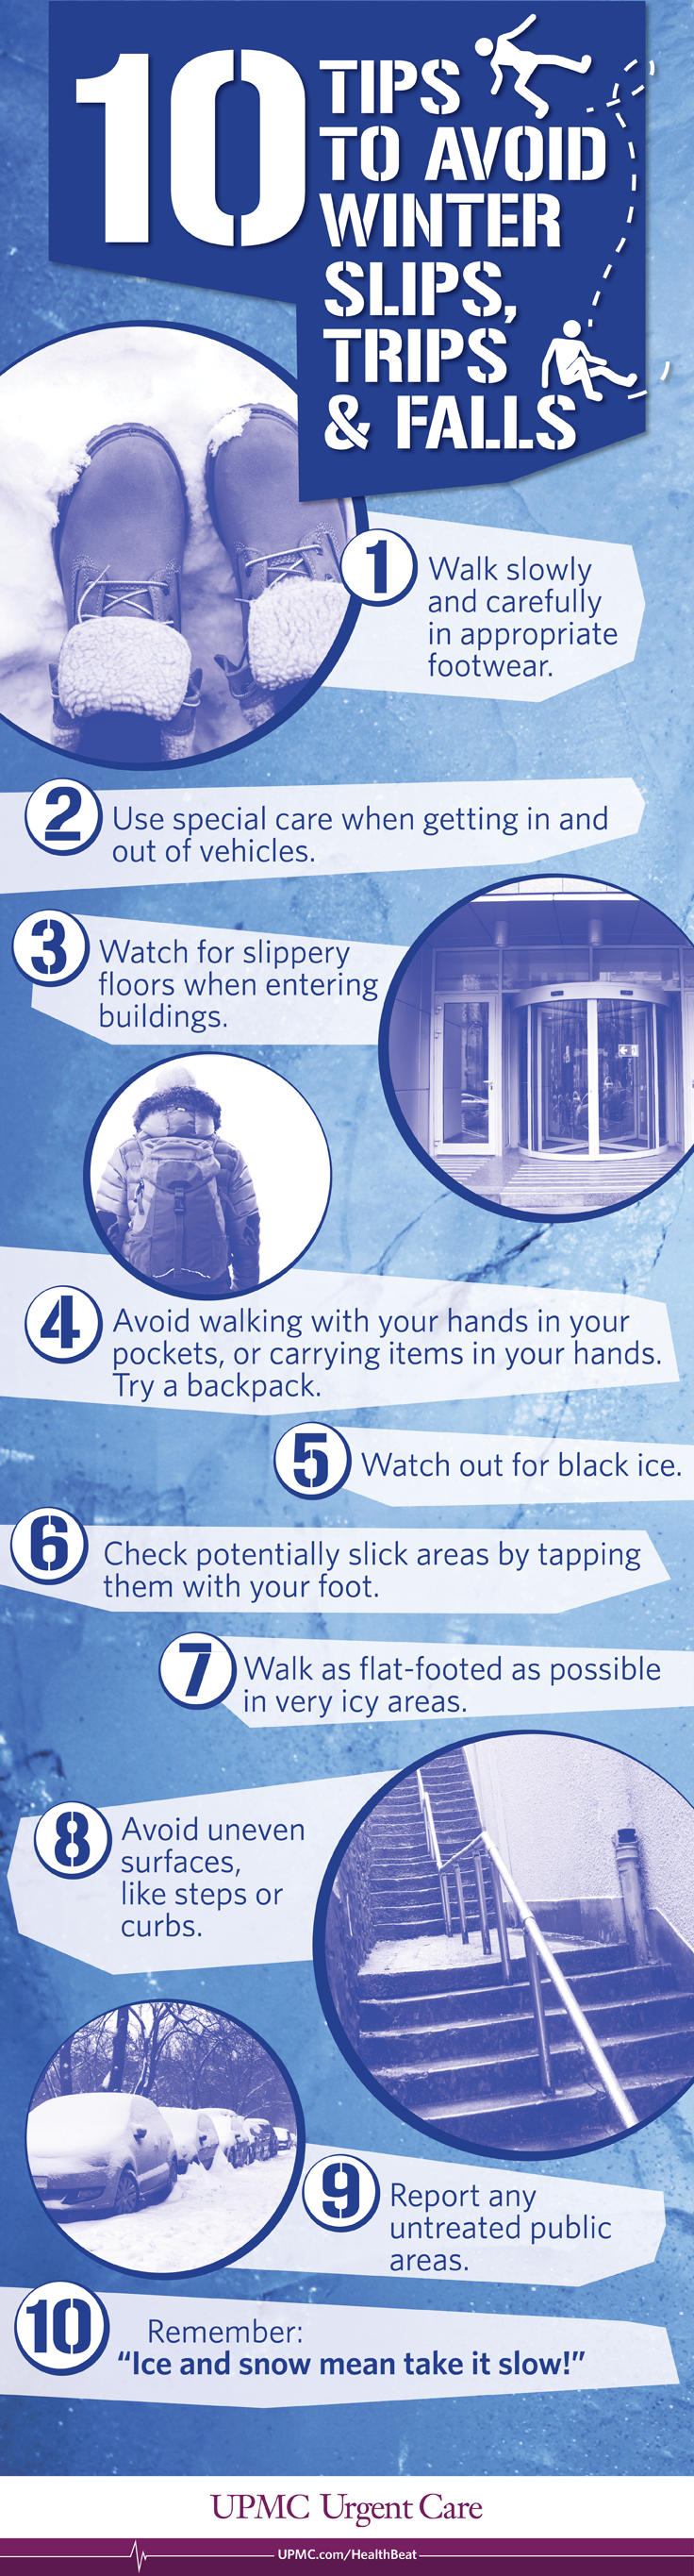 10 Tips to Avoid Winter Slips, Trips, and Falls Slip